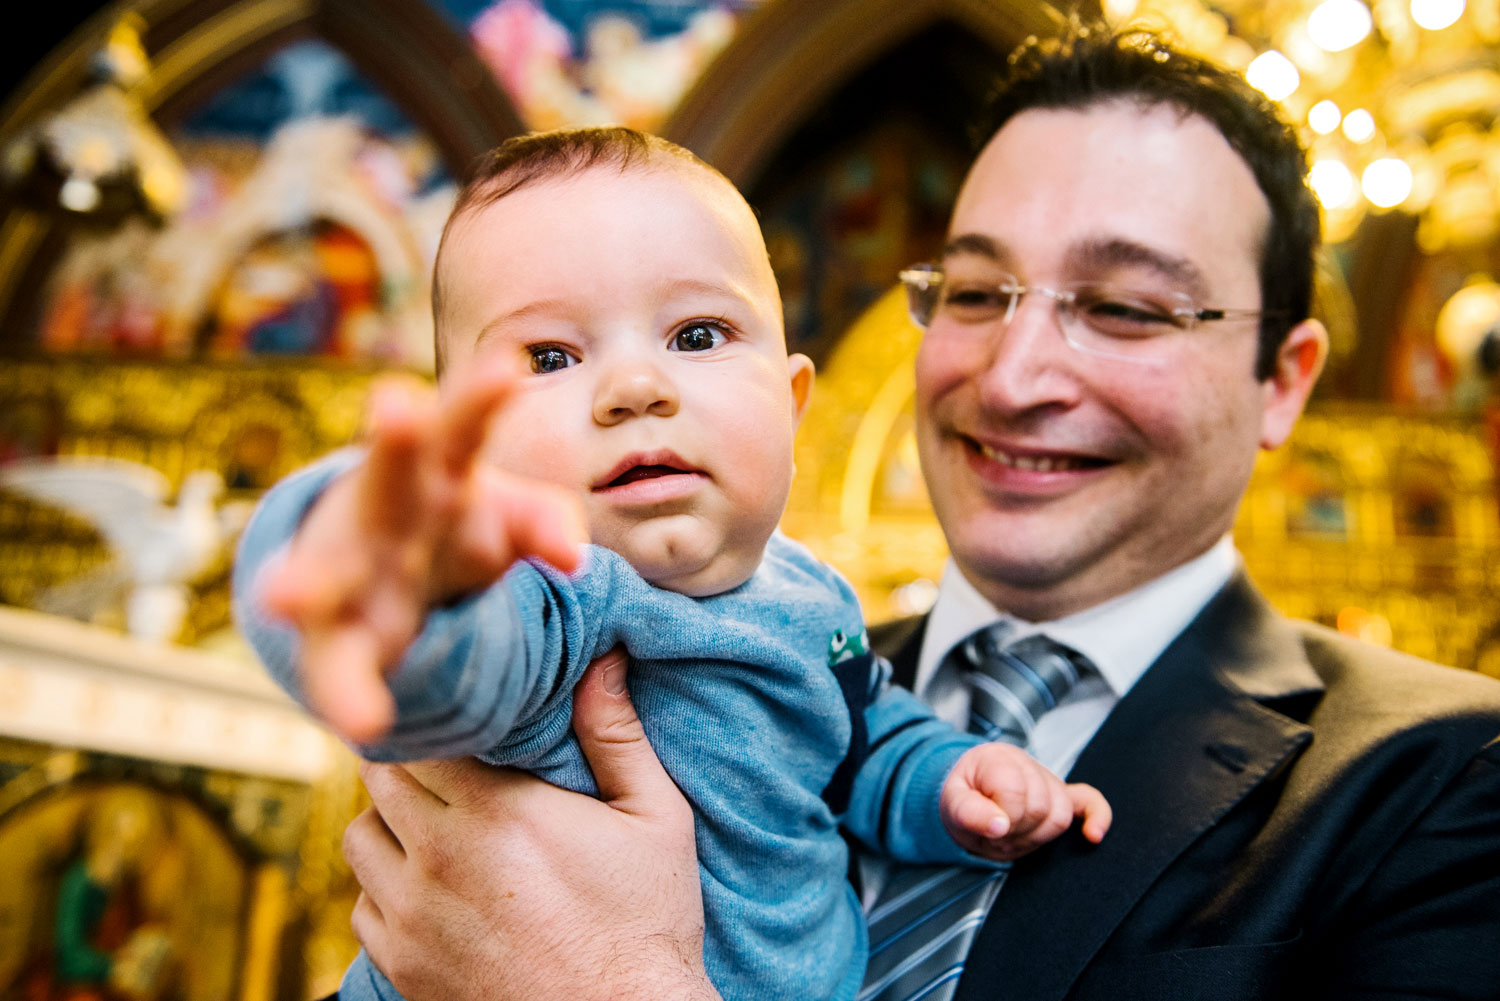 Christening-Photographer-Sydney-K4.jpg